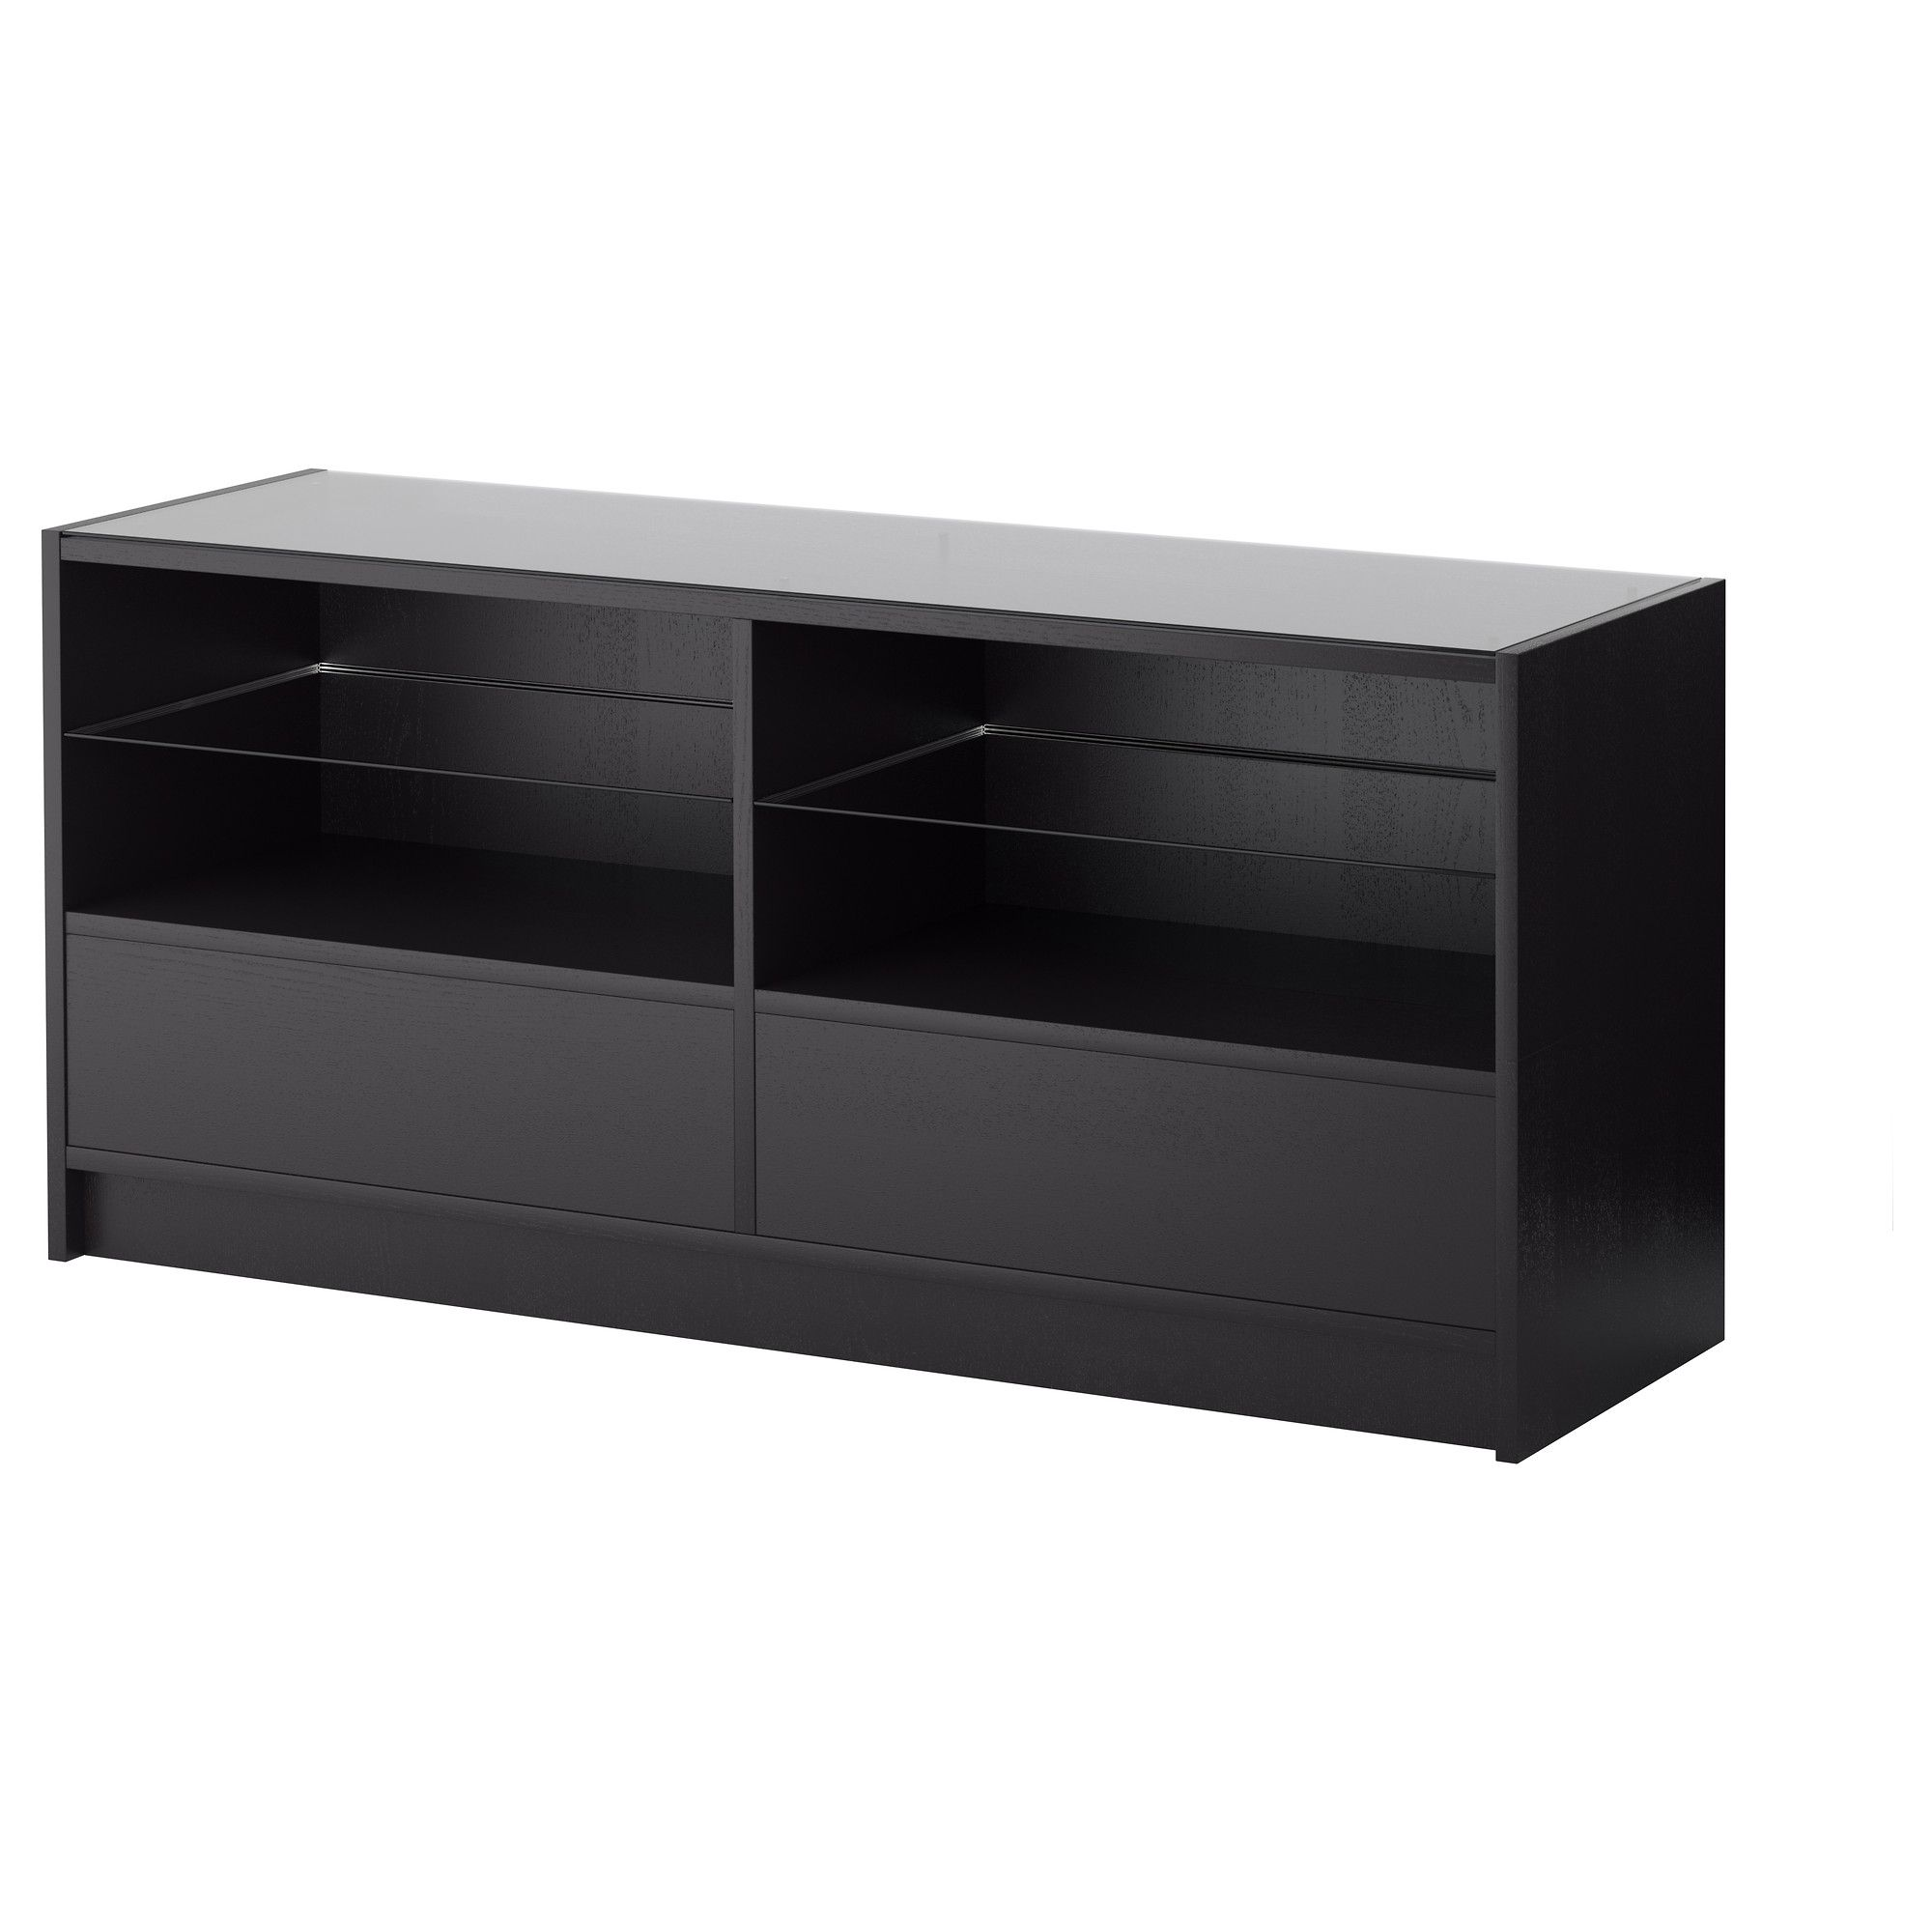 Rehausse Tv Ikea Boksel Console Table Black Brown Ikea Ideas For The Home